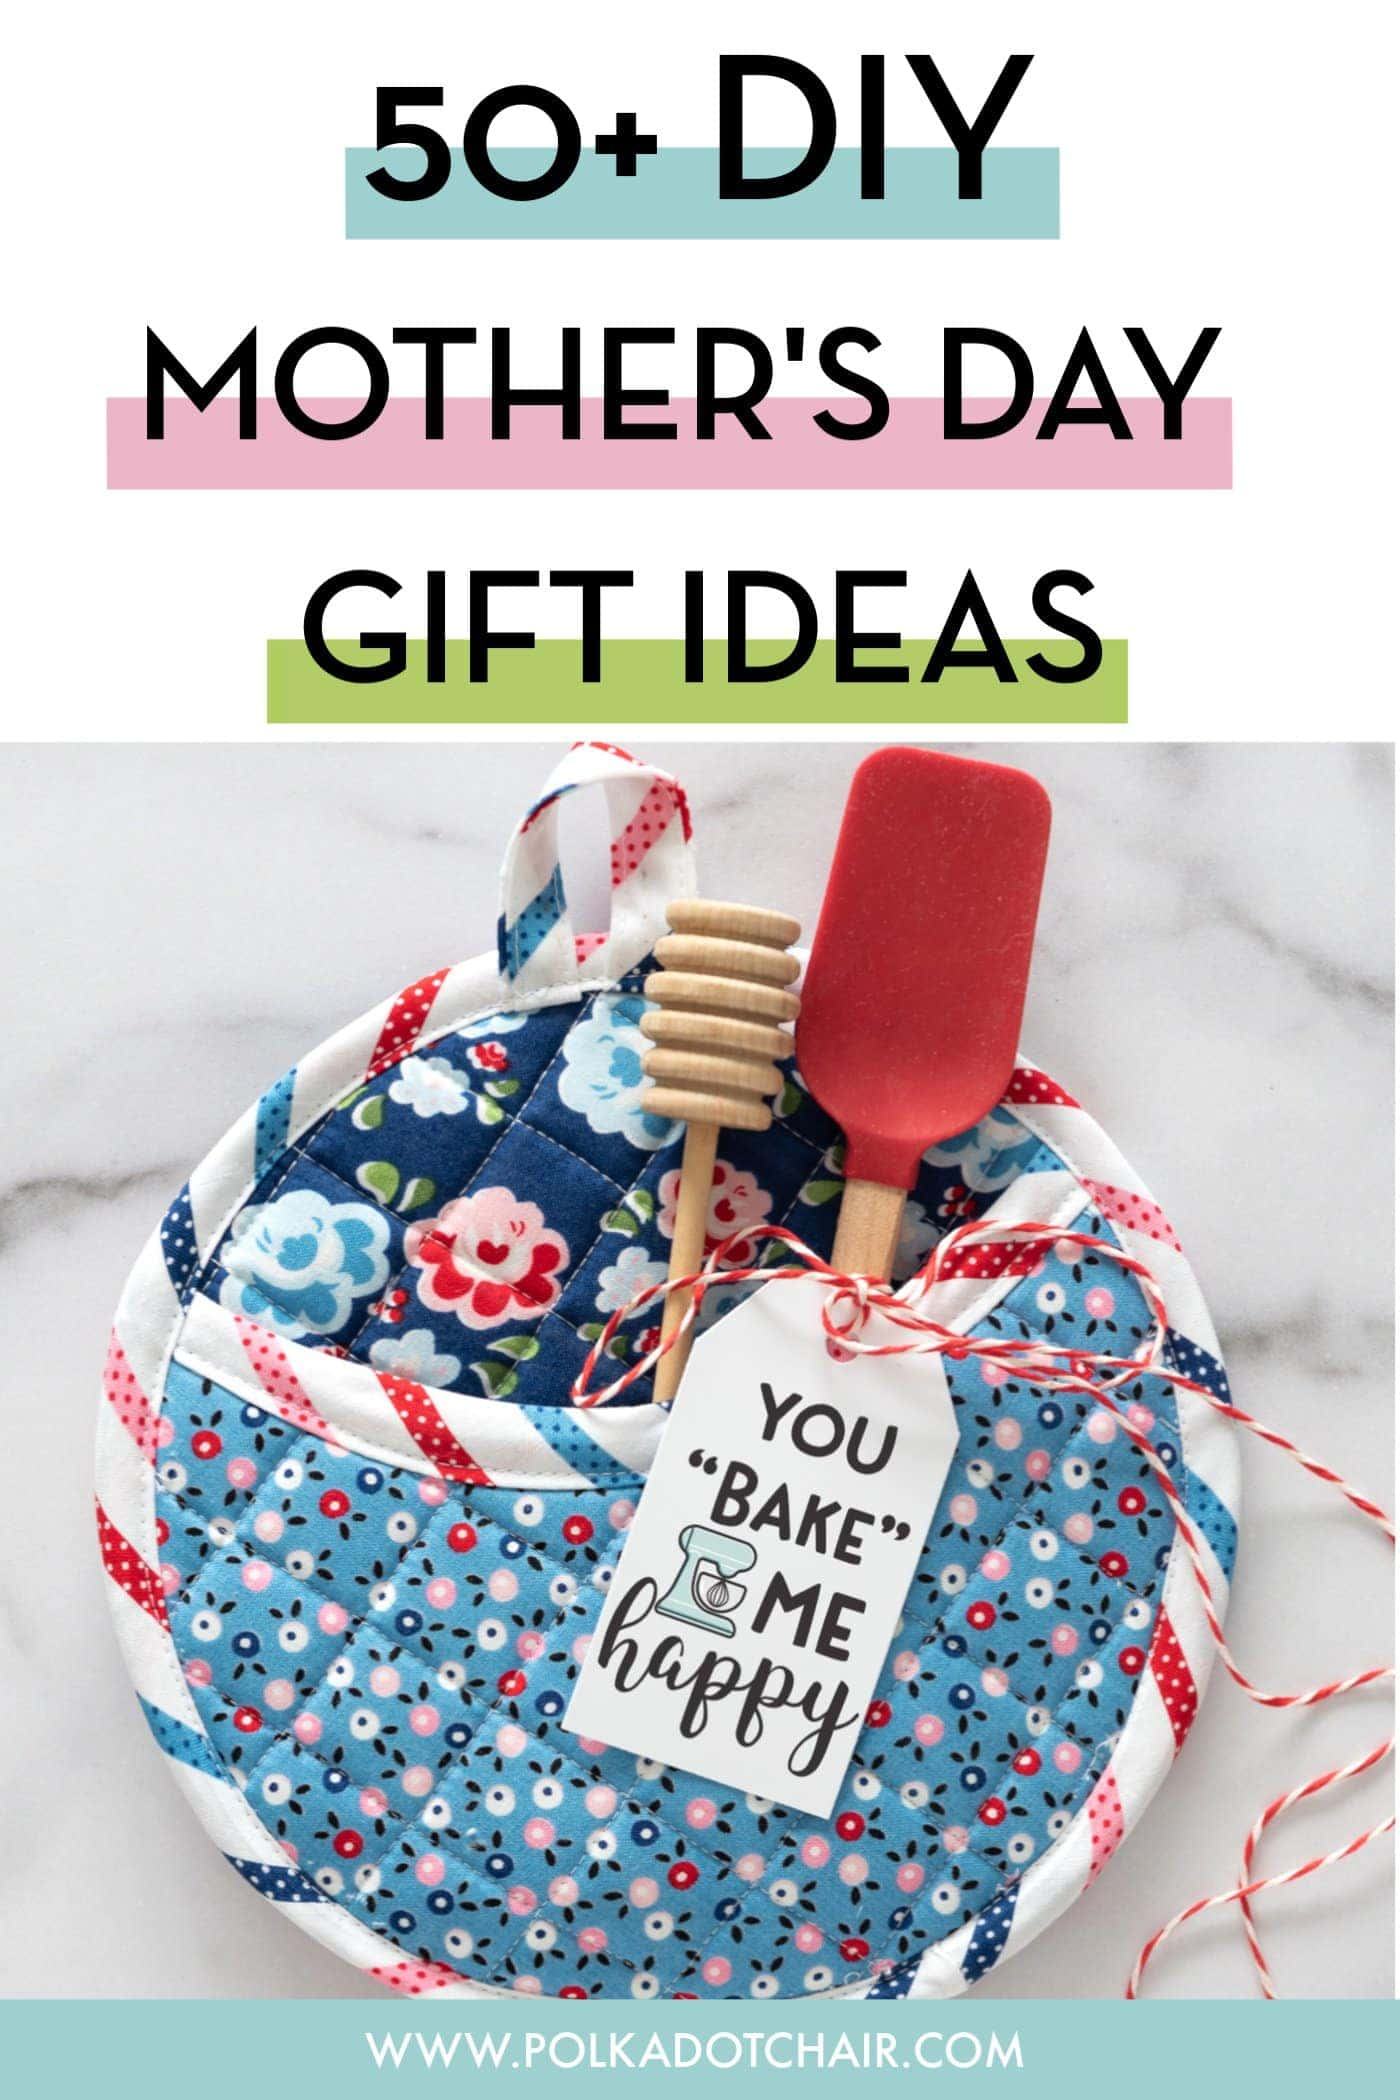 50+ DIY Mother's Day Gift Ideas & Projects | The Polka Dot ...